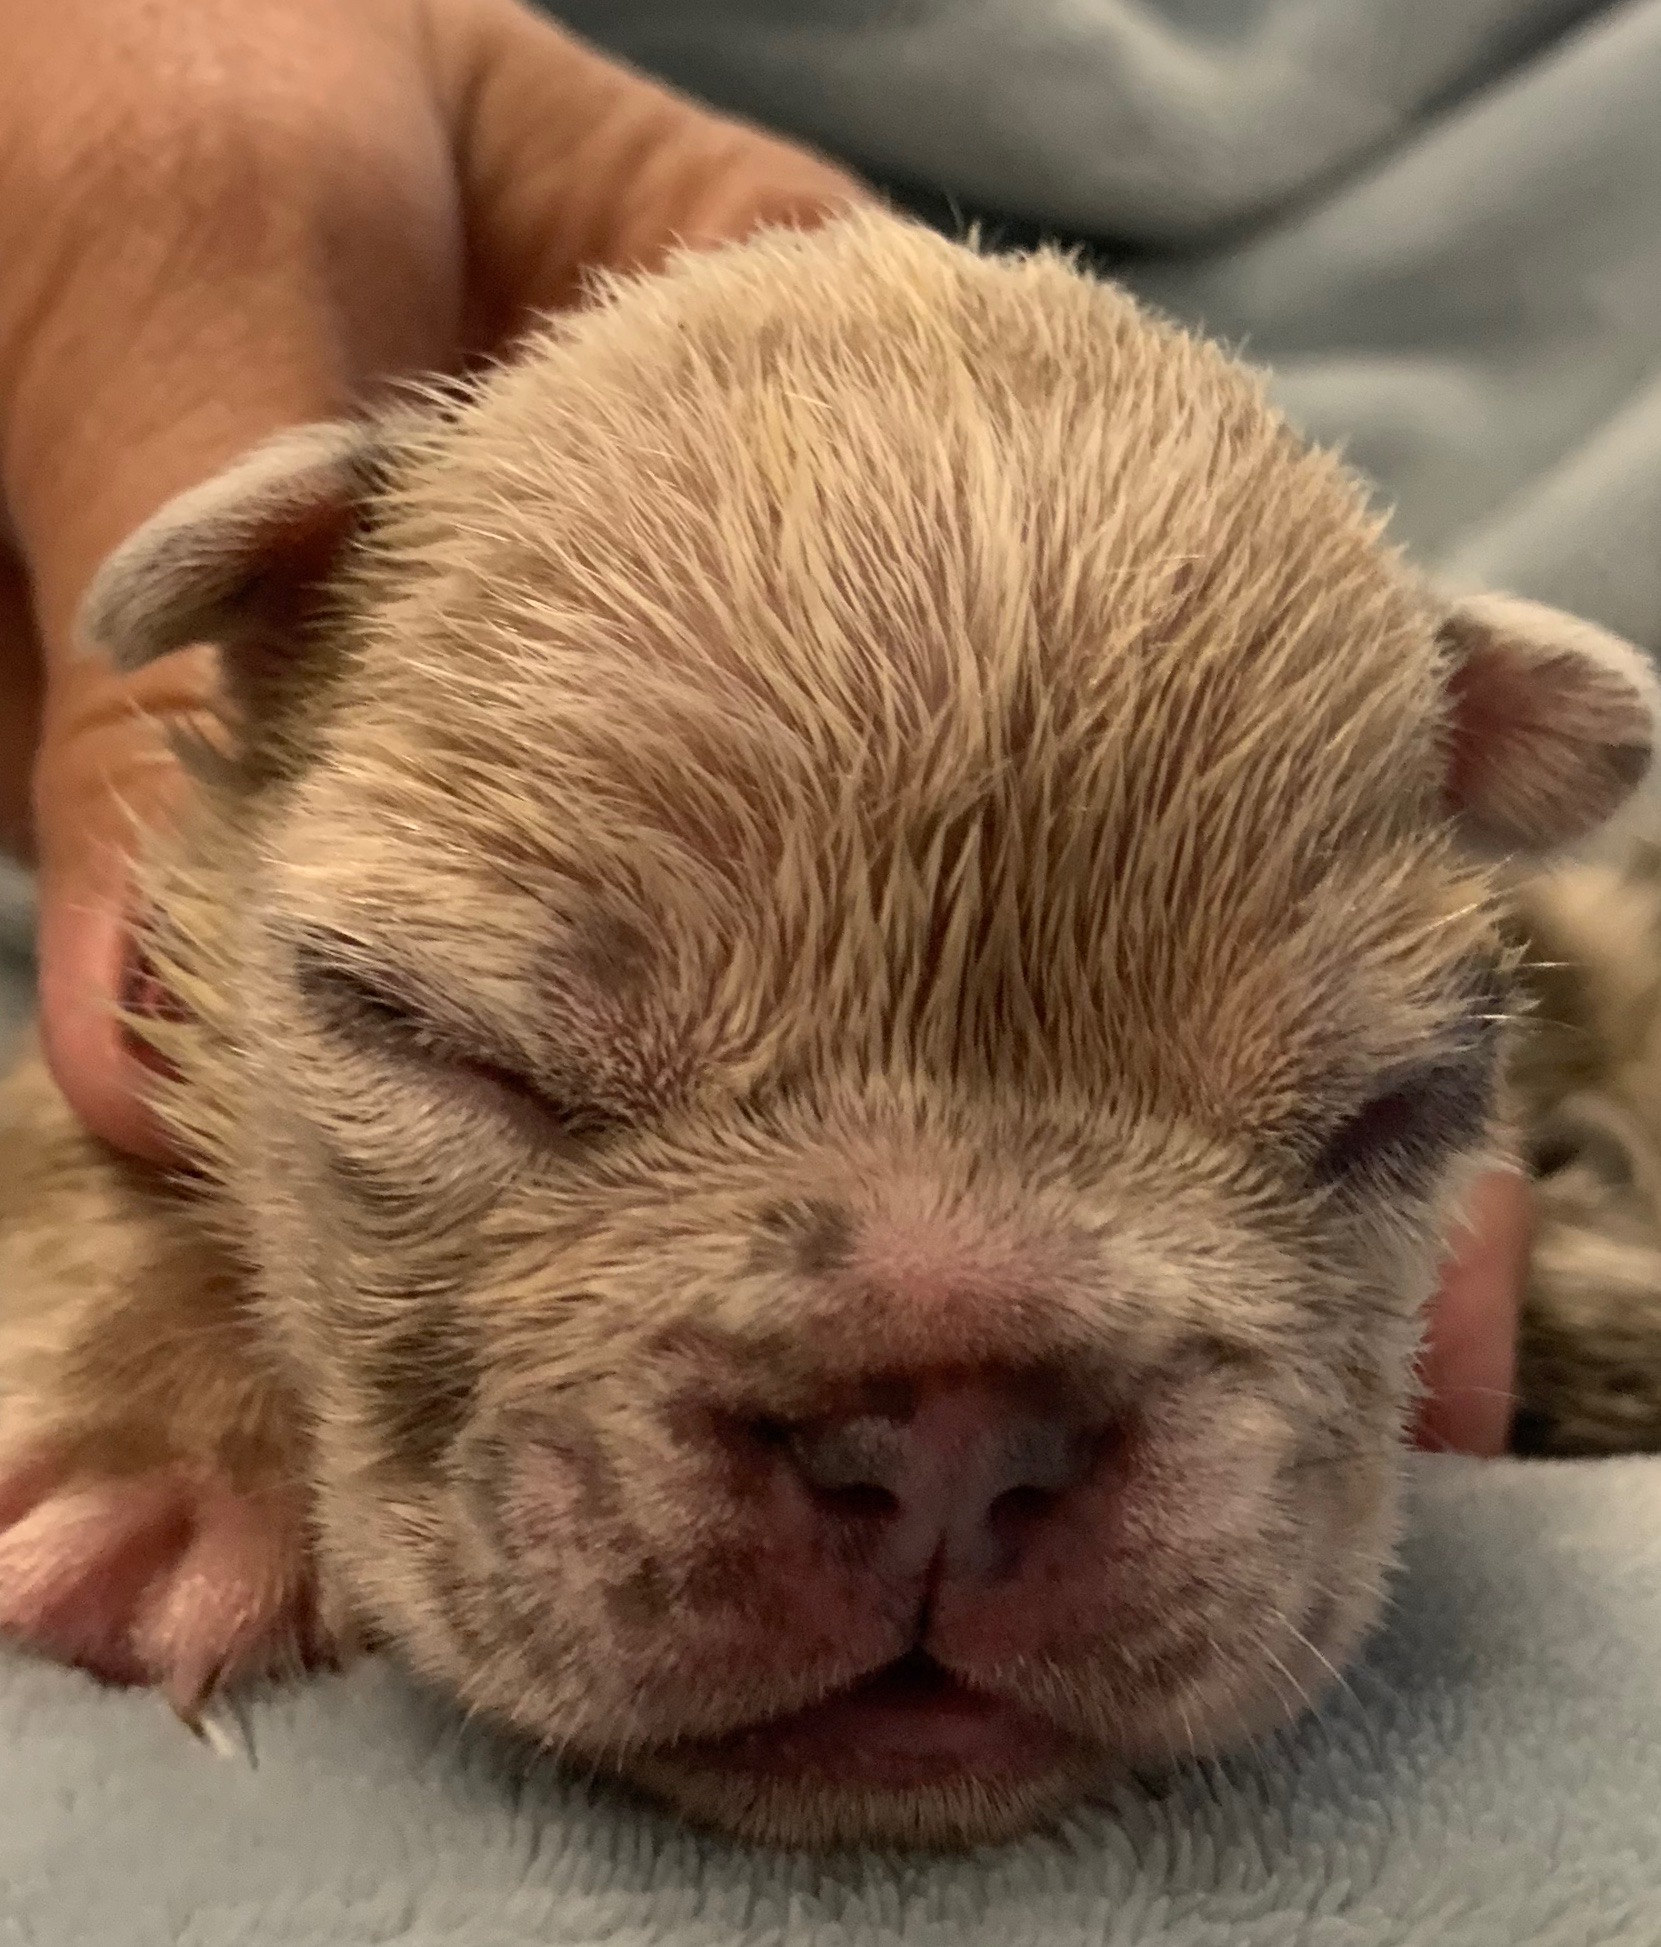 Upcoming Blue and Merle French Bulldog Litter: July 22, 2020